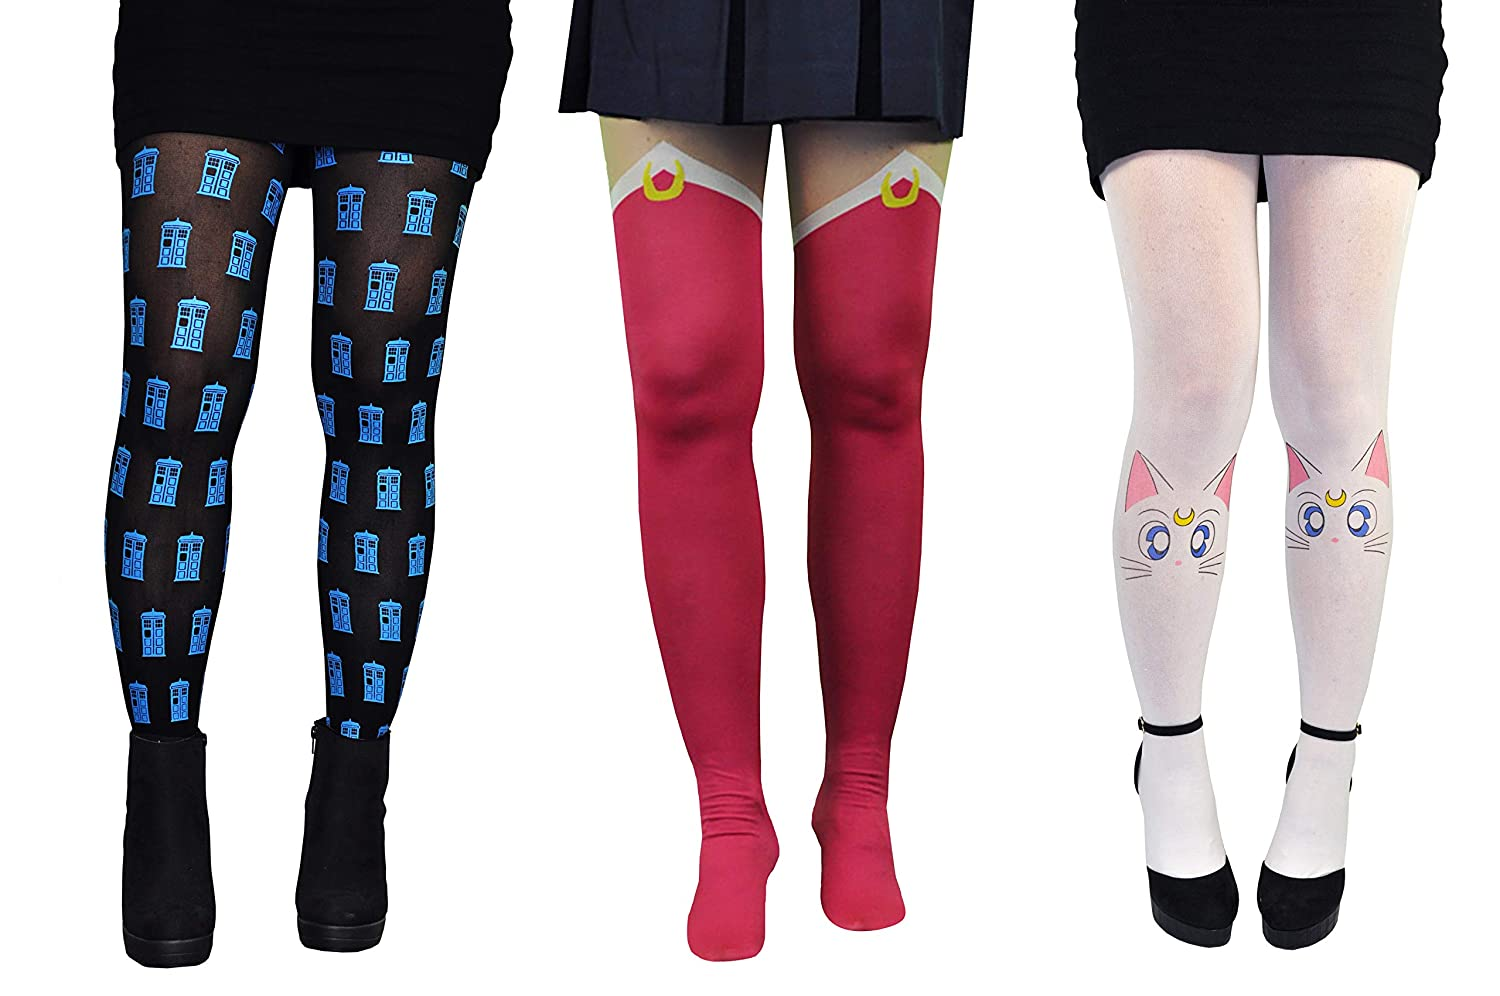 dd7b328e29cca Sailor Moon & Doctor Who Tights (3 Pair) - Artemis Tardis Leggings Women  Ladies Socks at Amazon Women's Clothing store: